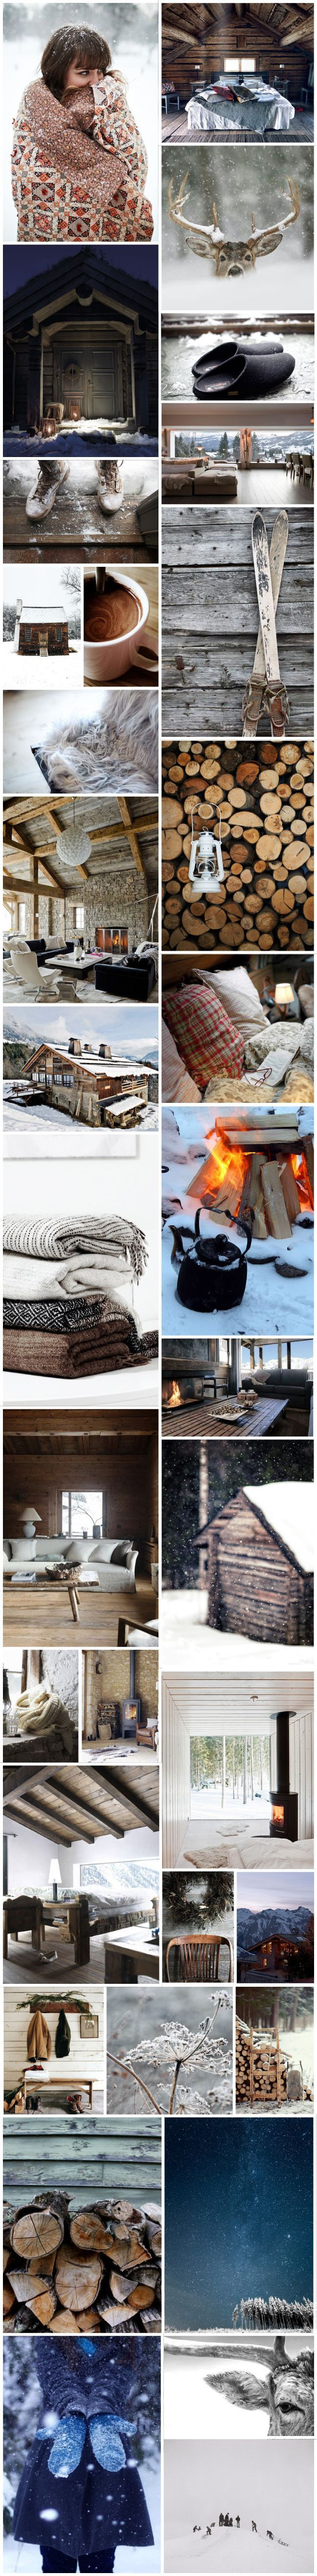 MOODBOARD | MY PERFECT WINTER CABIN